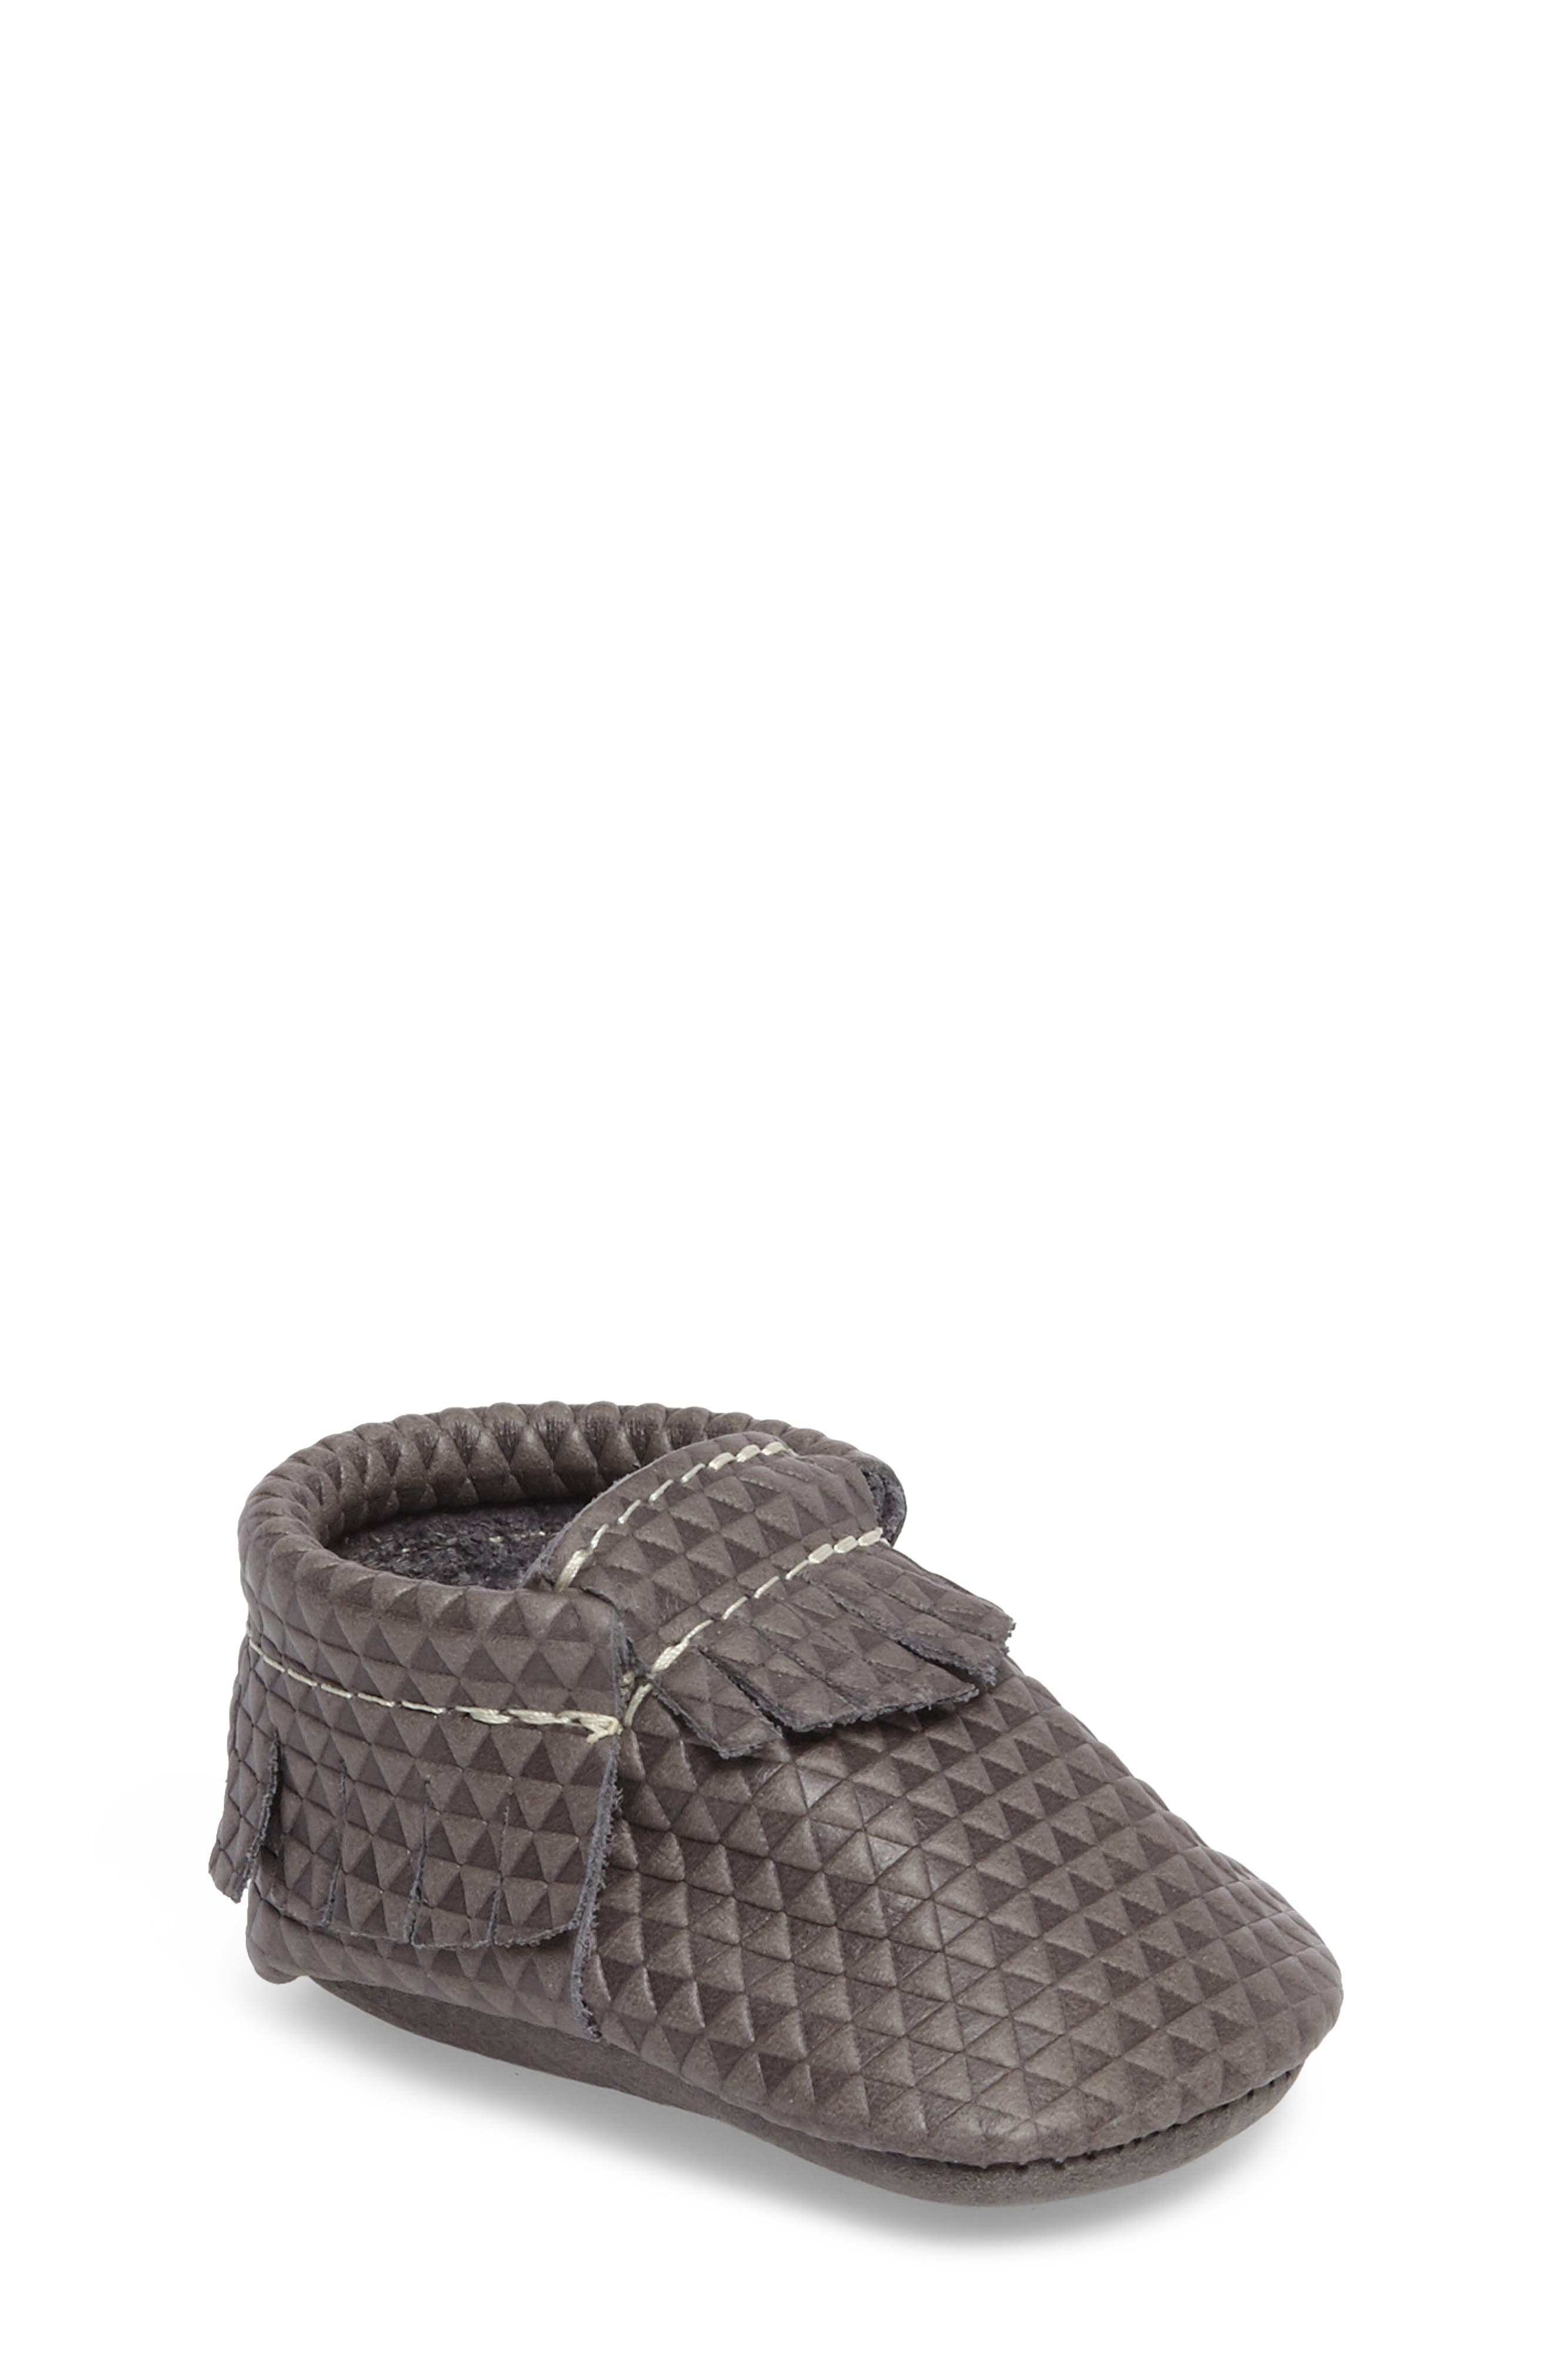 Triangles Print Moccasin,                             Main thumbnail 1, color,                             020